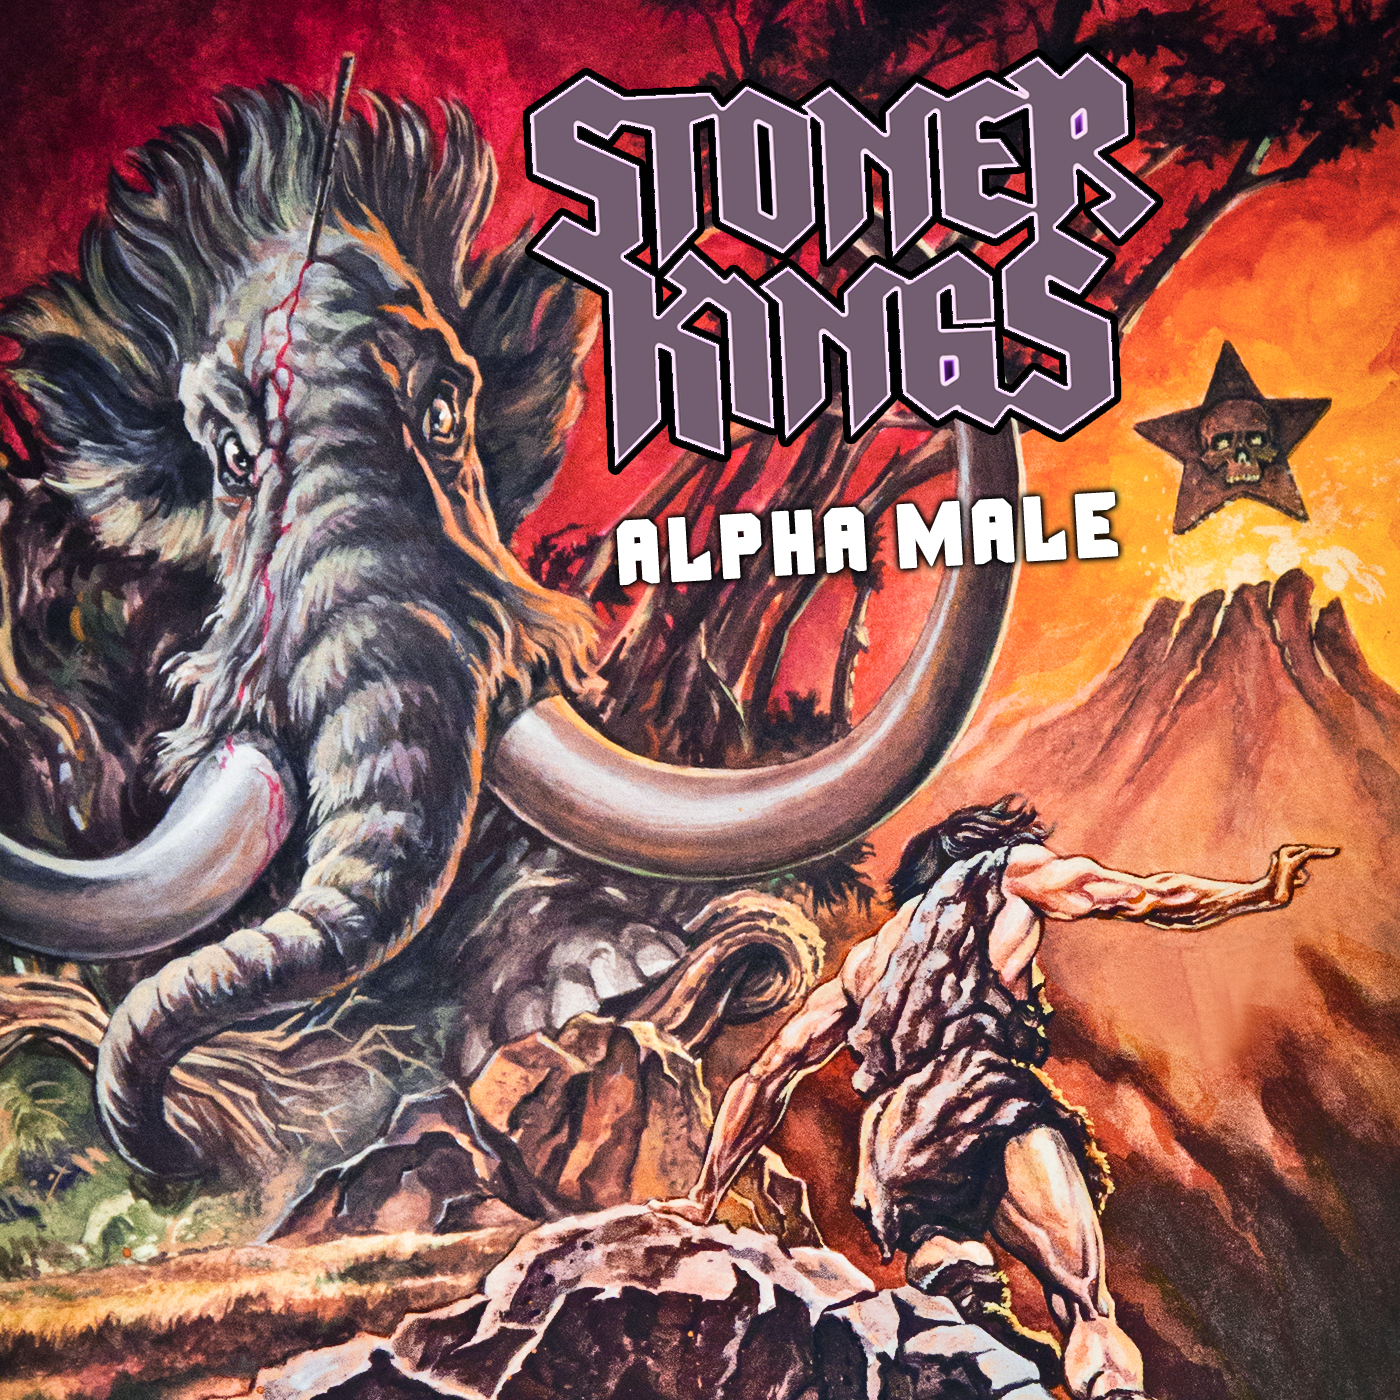 STONER KINGS Alpha Male cover